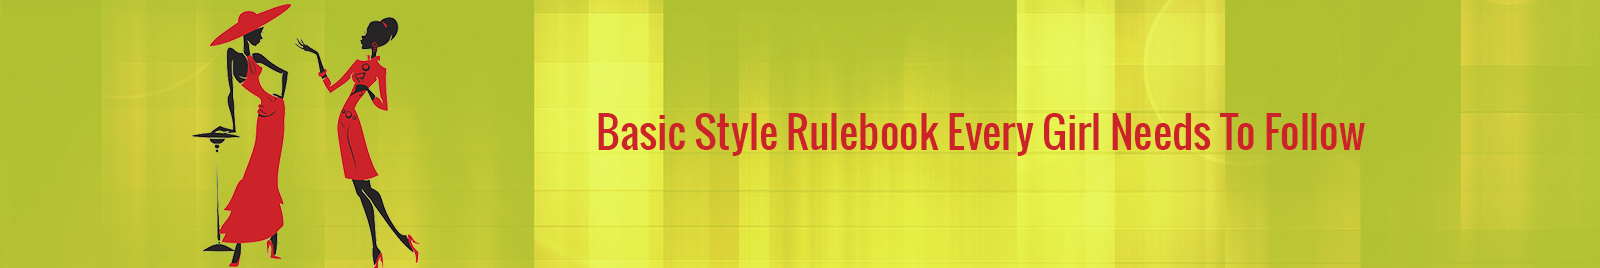 Style rulebook for girls